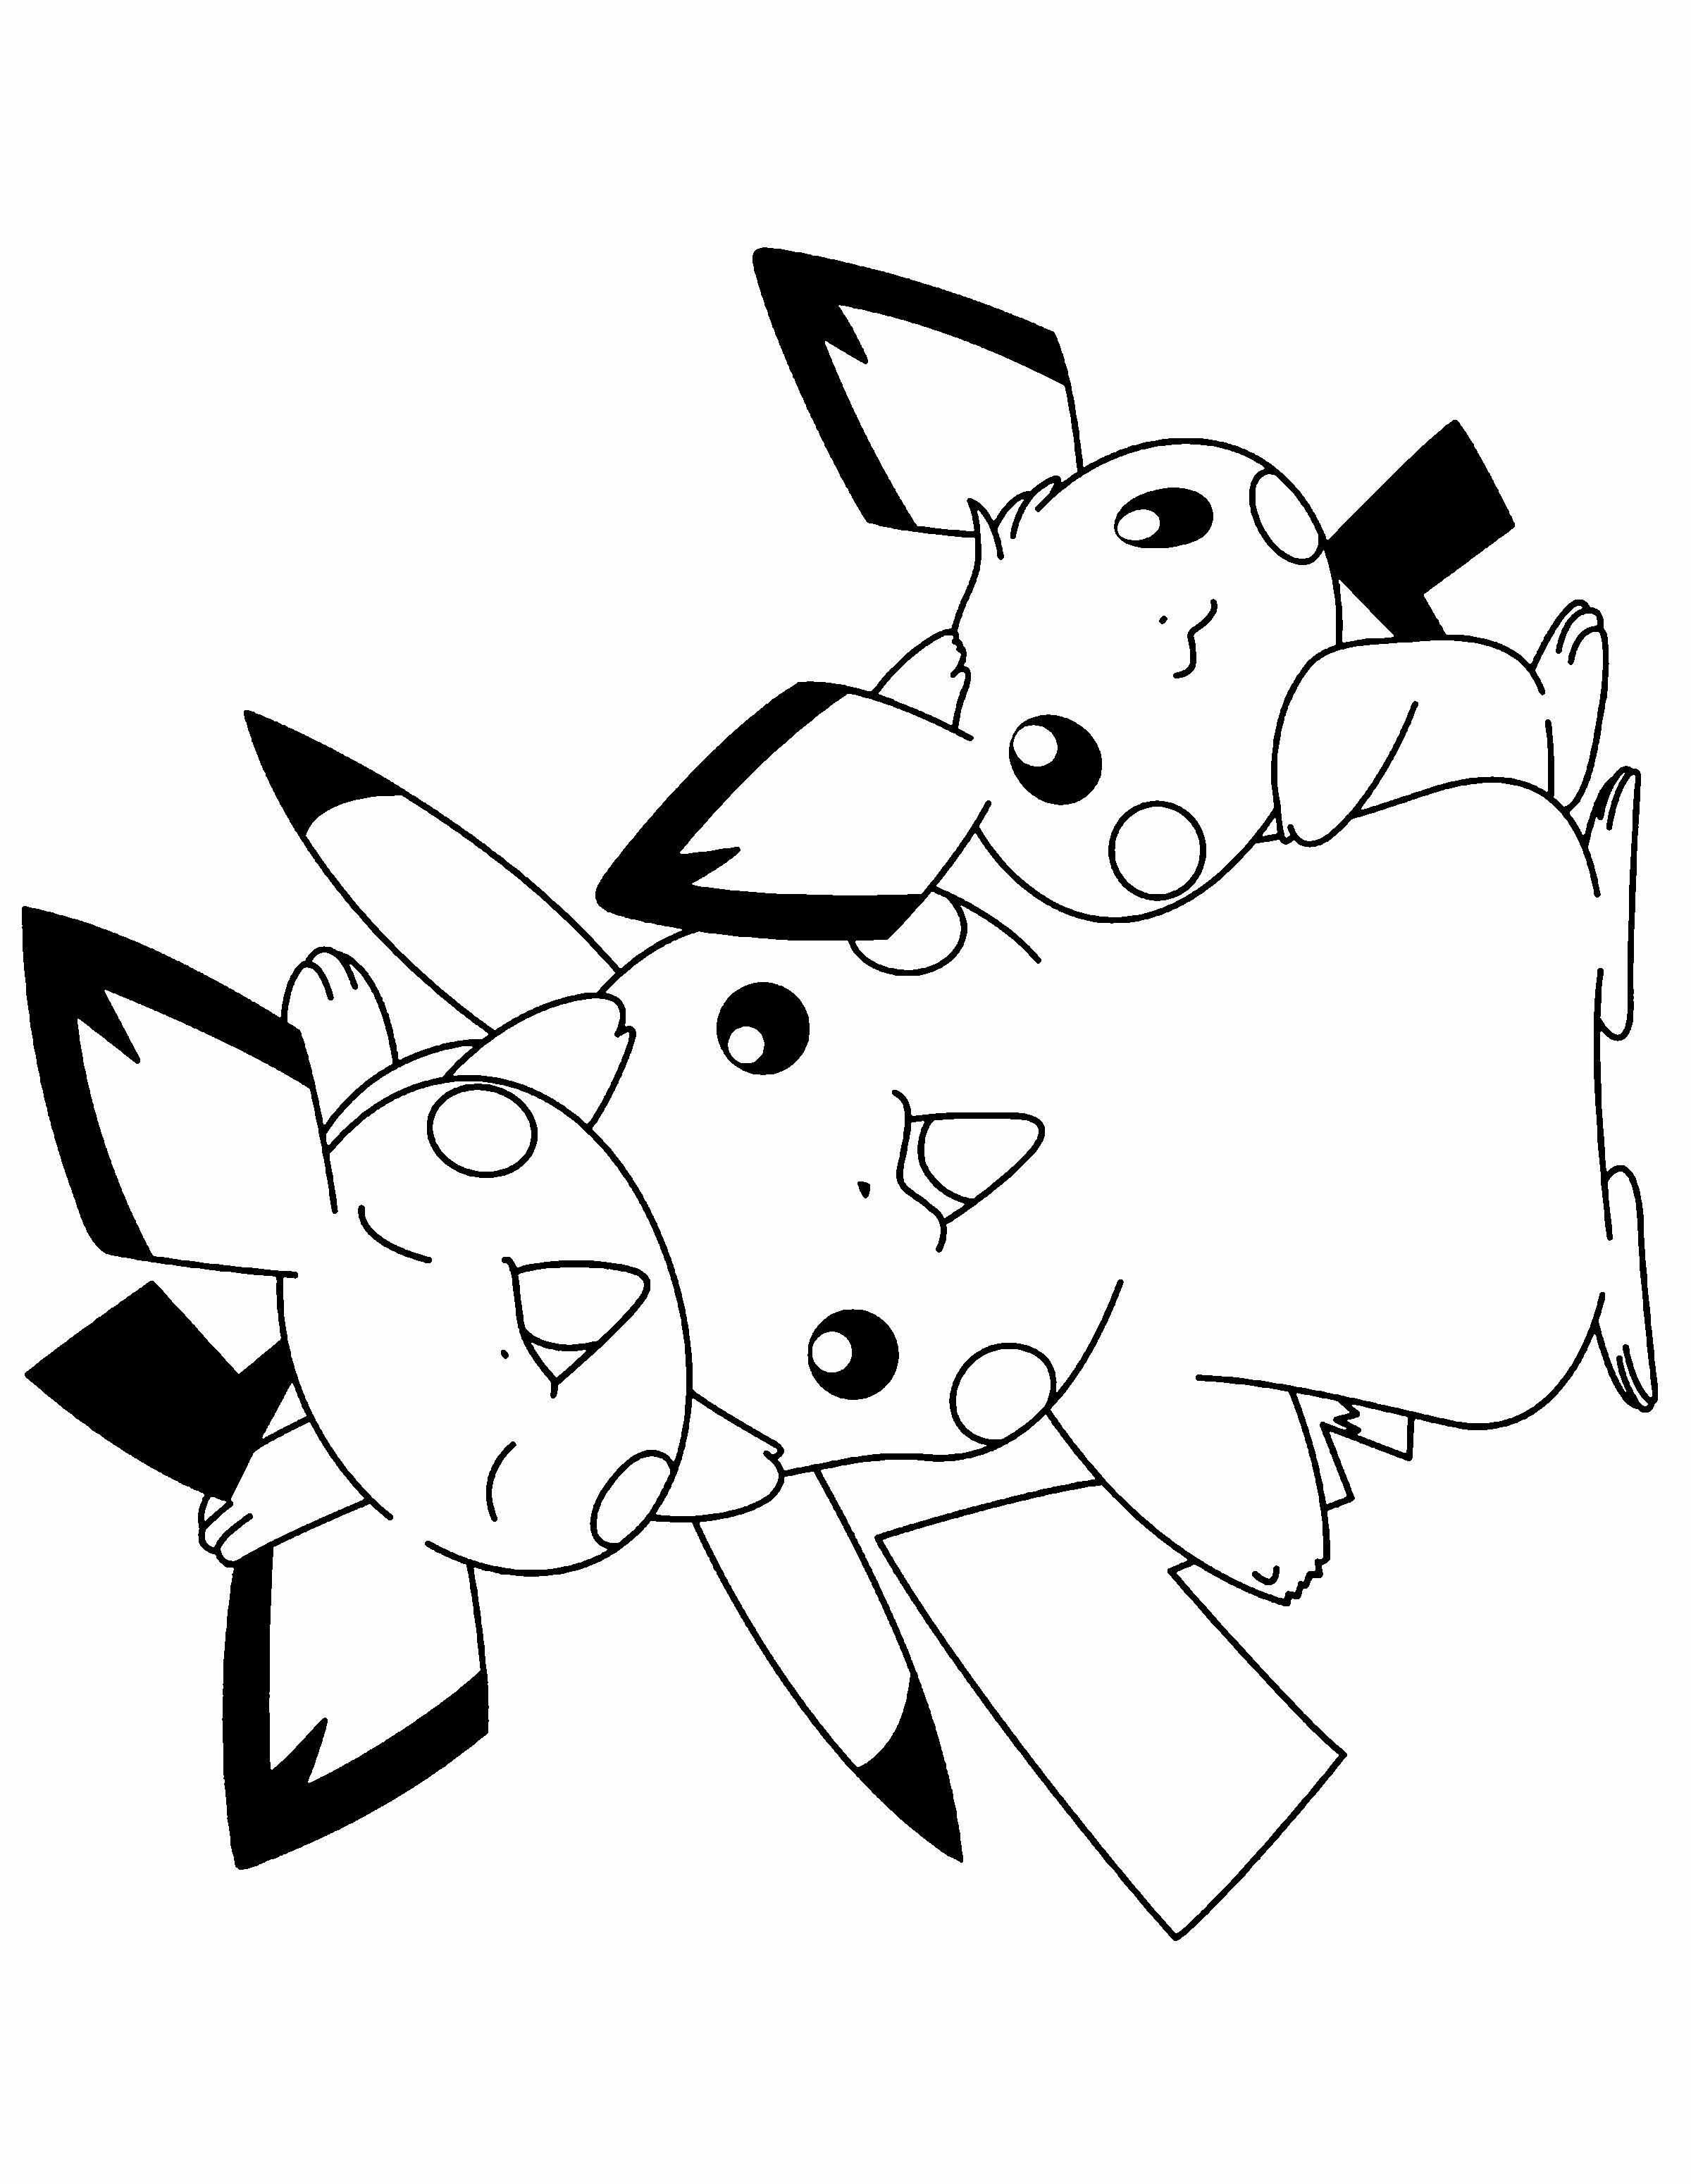 Alolan Raichu Coloring Page Best Of Pikachu And Pichu Coloring